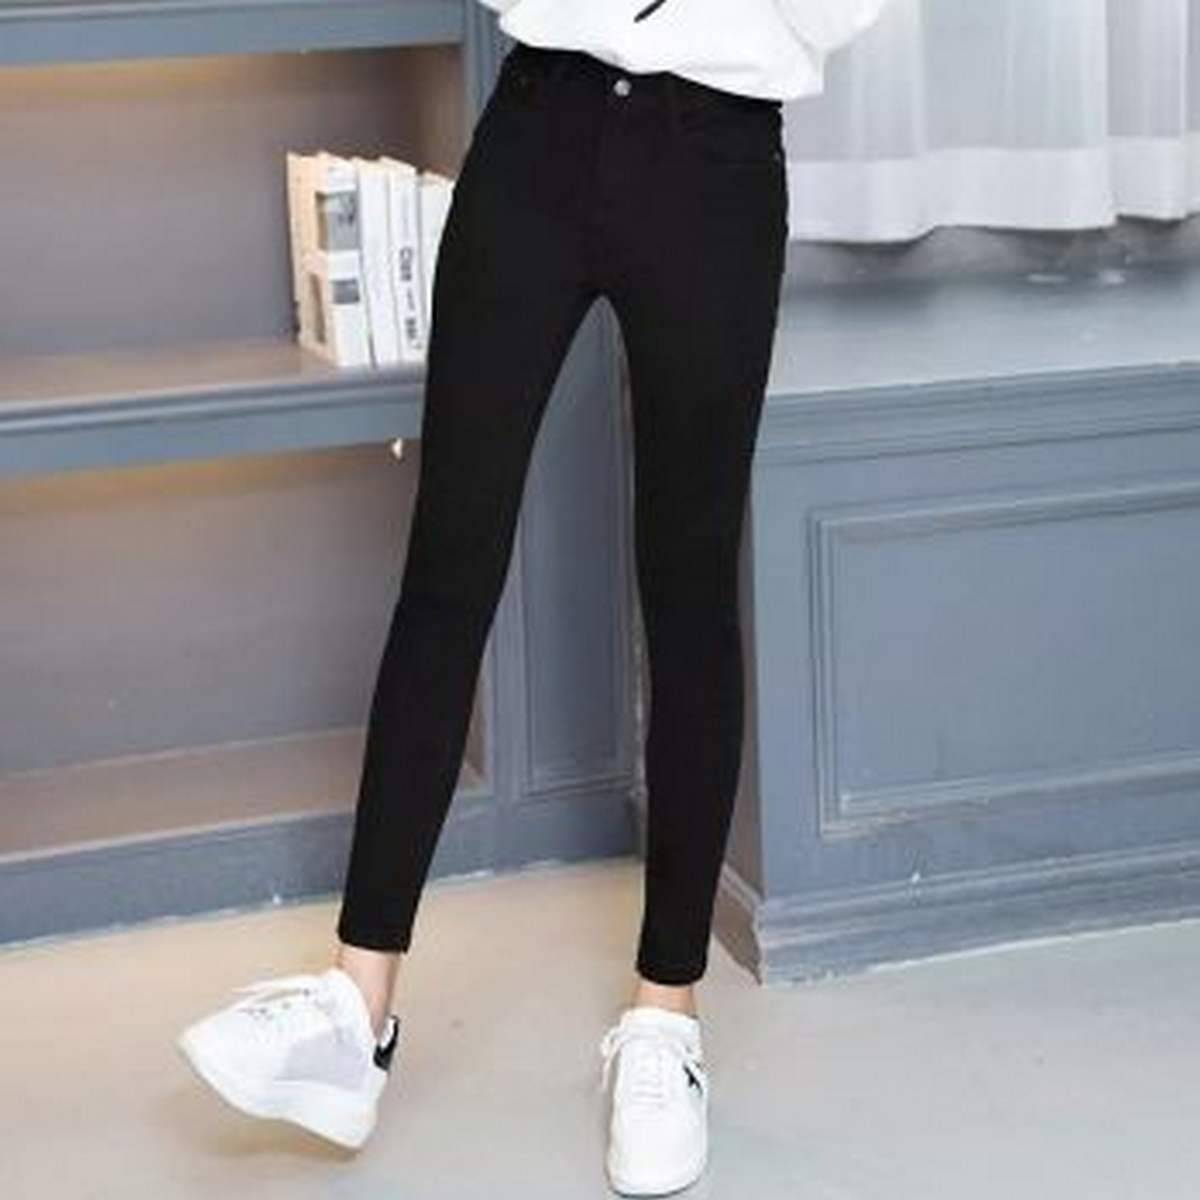 Plane Jeans For Girls By AW